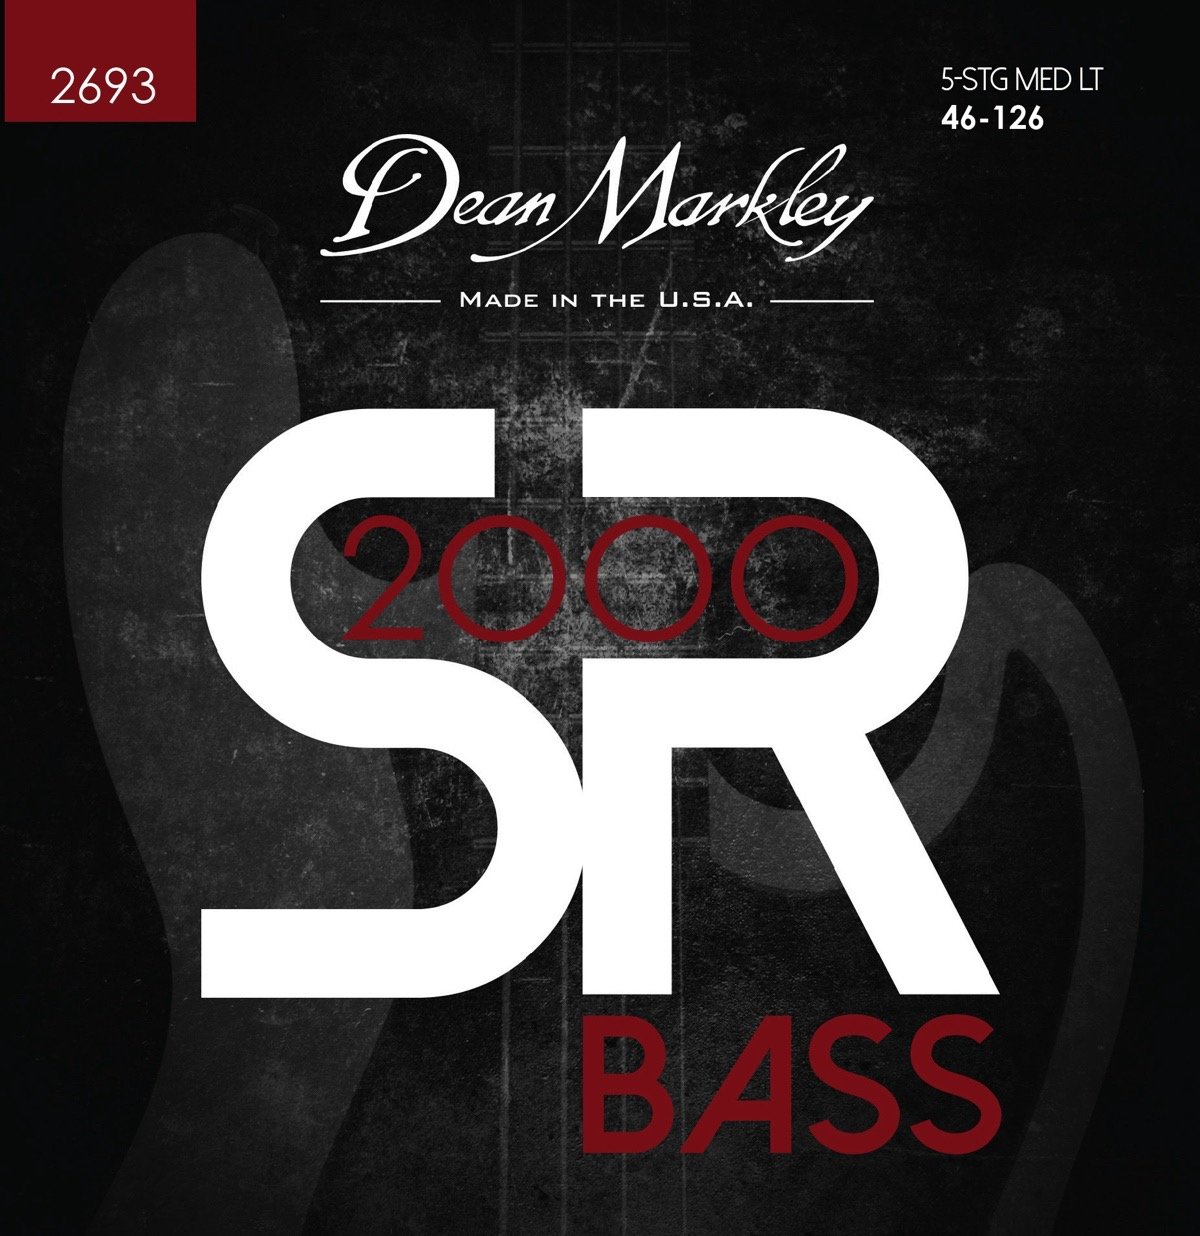 Dean Markley SR2000 Bass String Set Long Scale - 5-String Tapered 46-125 Medium-Light 2693